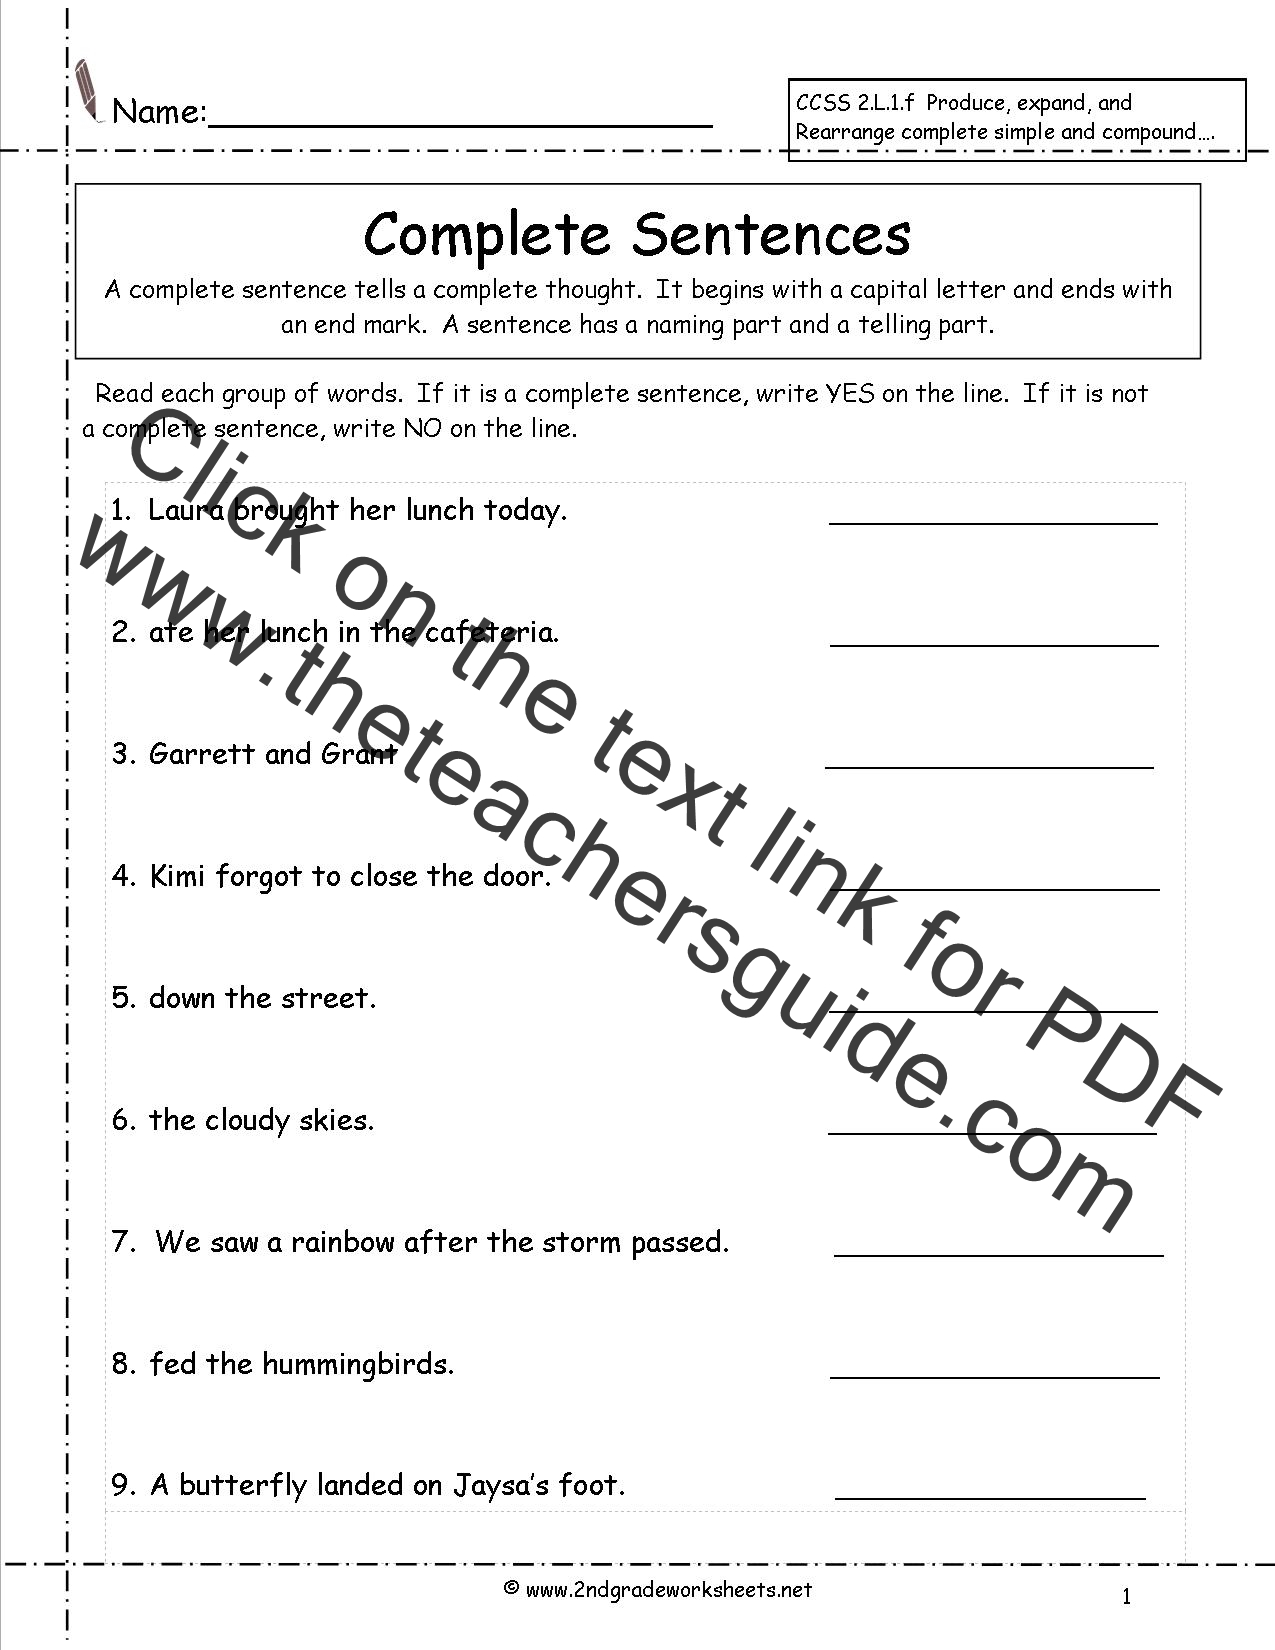 Worksheets Compound Sentences Worksheet second grade sentences worksheets ccss 2 l 1 f sentence worksheet complete sentences